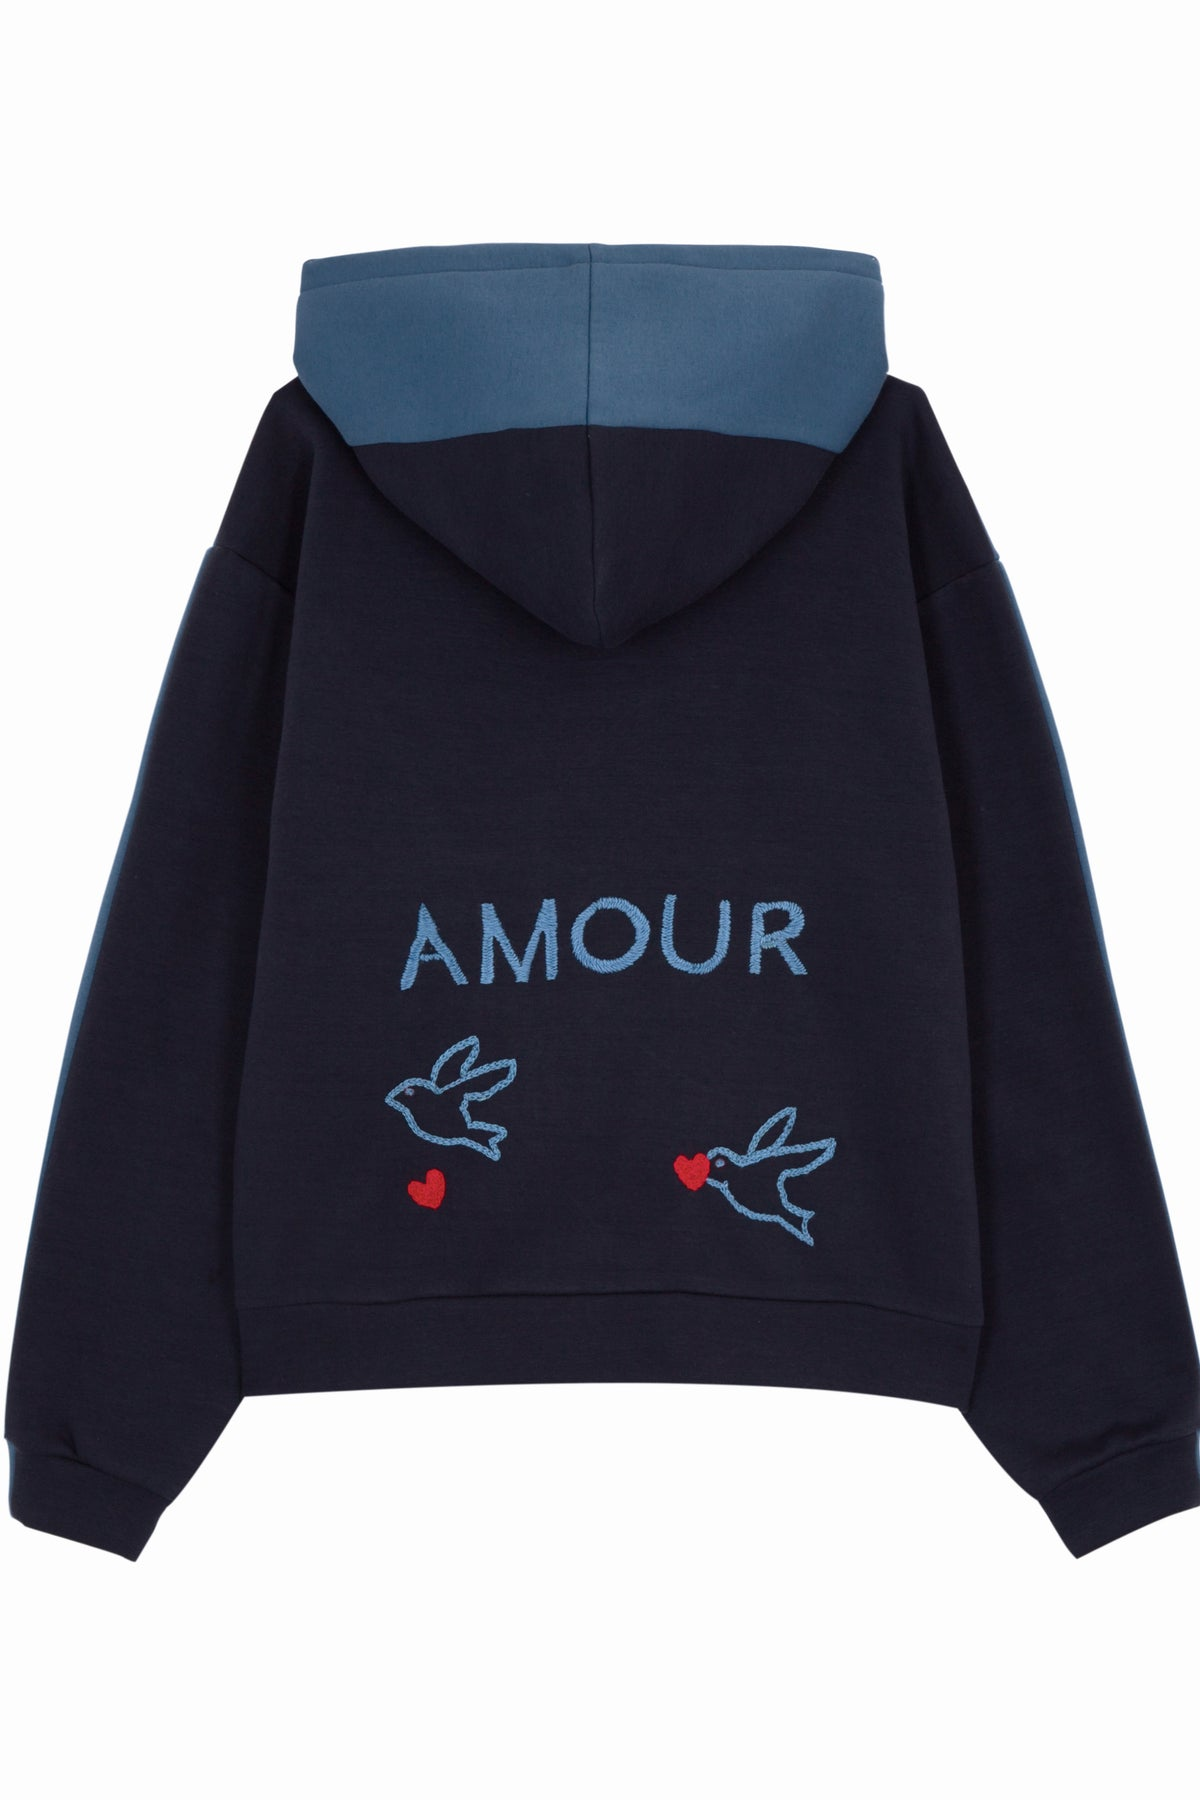 Sweat-Shirt Léon - Bleu (Amour) - Côme Éditions